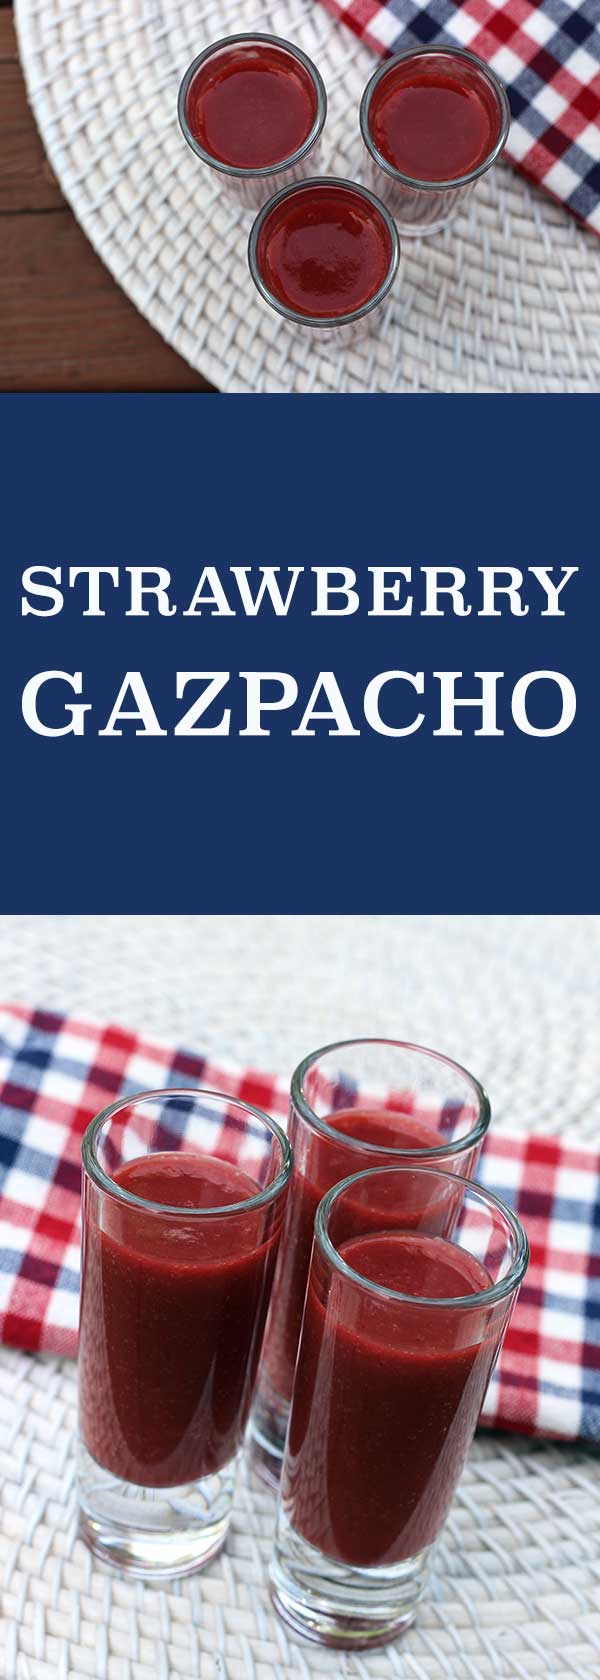 Strawberry Gazpacho | diabeticfoodie.com